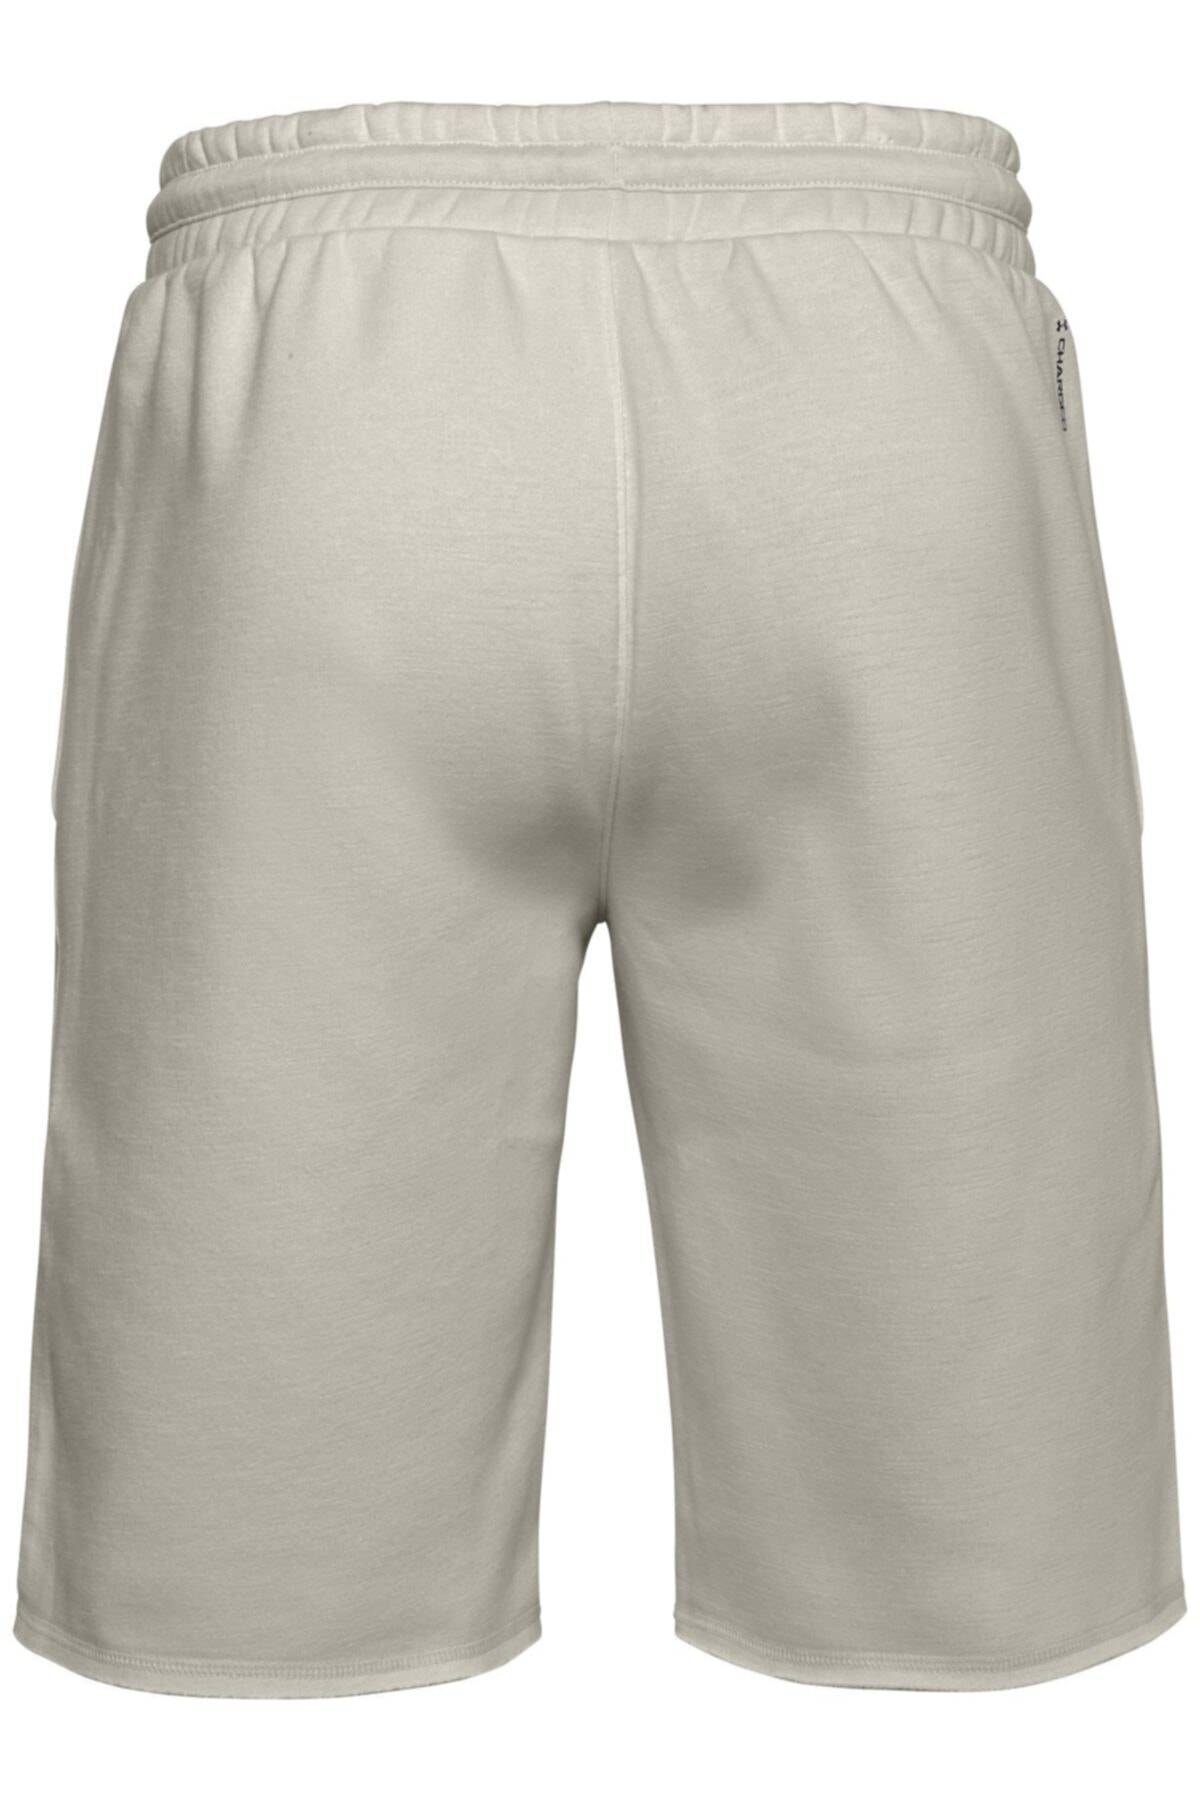 Under Armour Erkek Spor Şort - Ua Pjt Rock Cc Fleece Short - 1357200-110 2